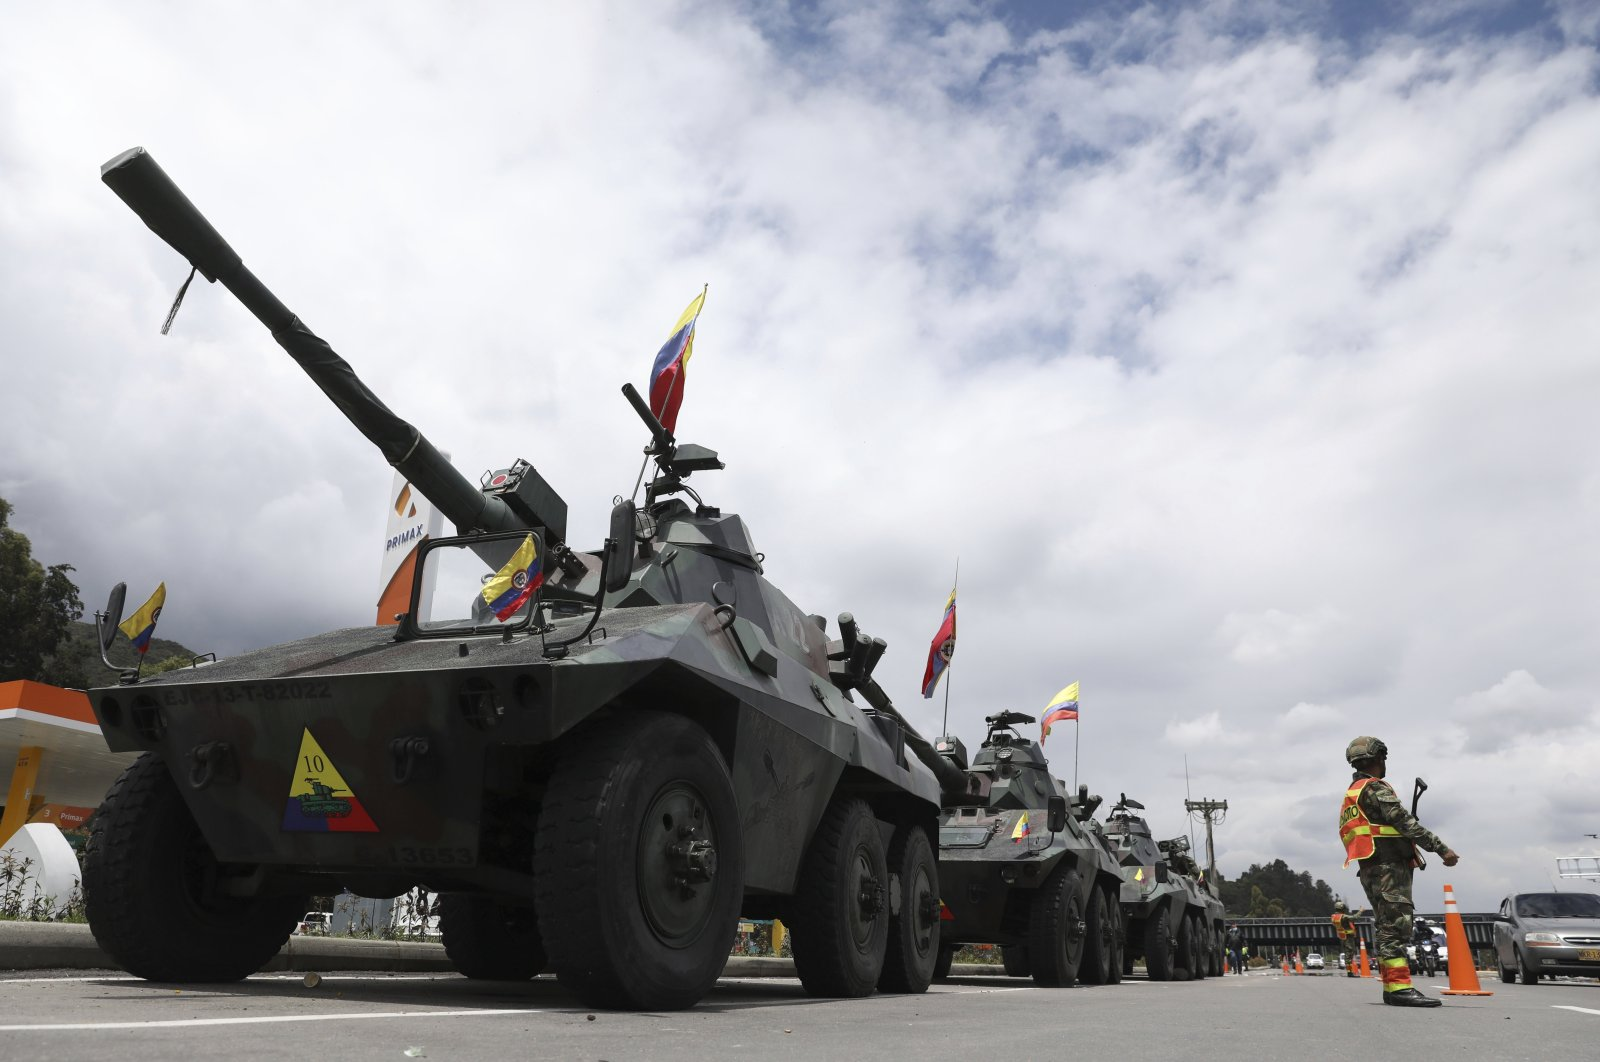 Soldiers and army tanks guard toll booths to keep protesters from damaging them, on the outskirts of Bogota, Colombia, May 4, 2021. (AP Photo)